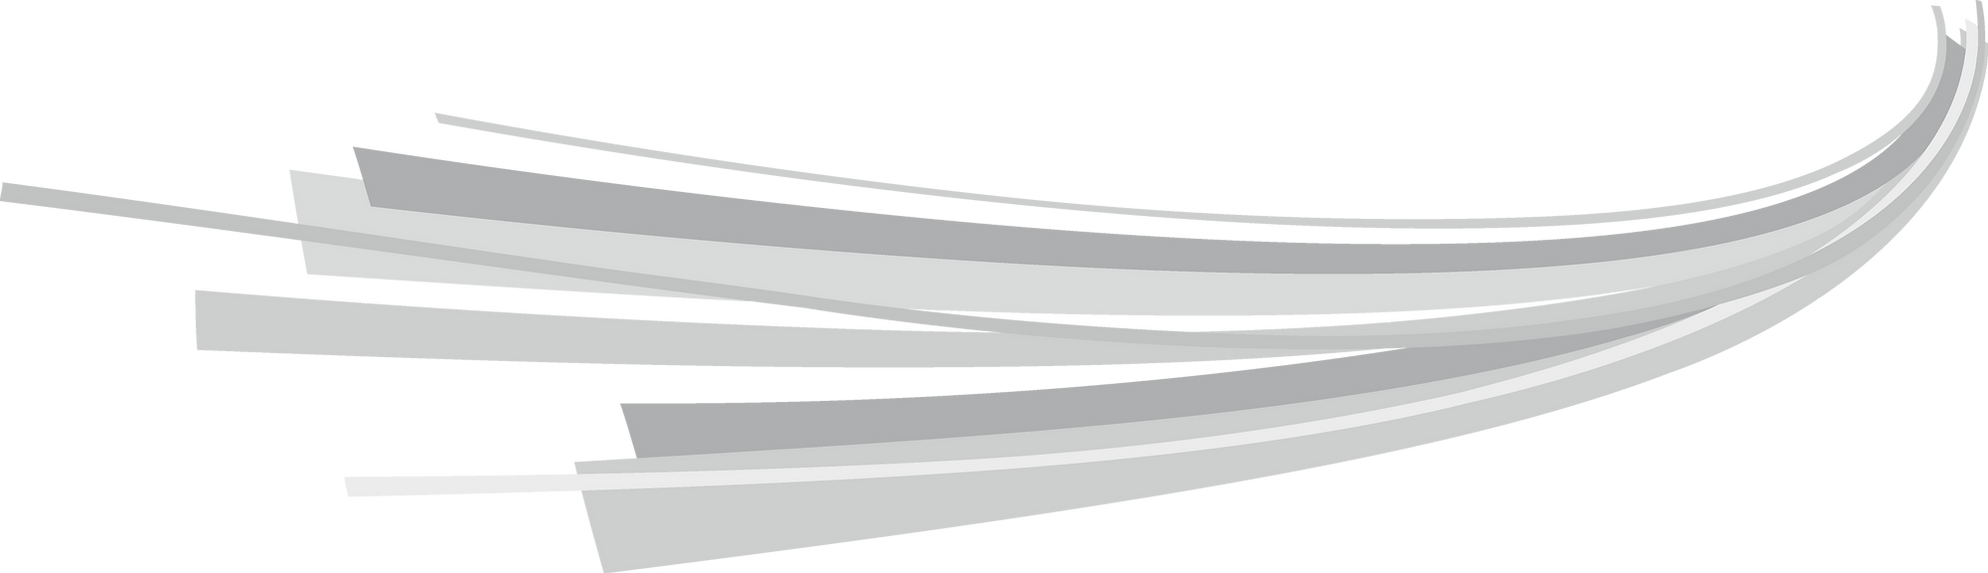 Grey-Abstract-Lines-PNG-Image-with-Trans